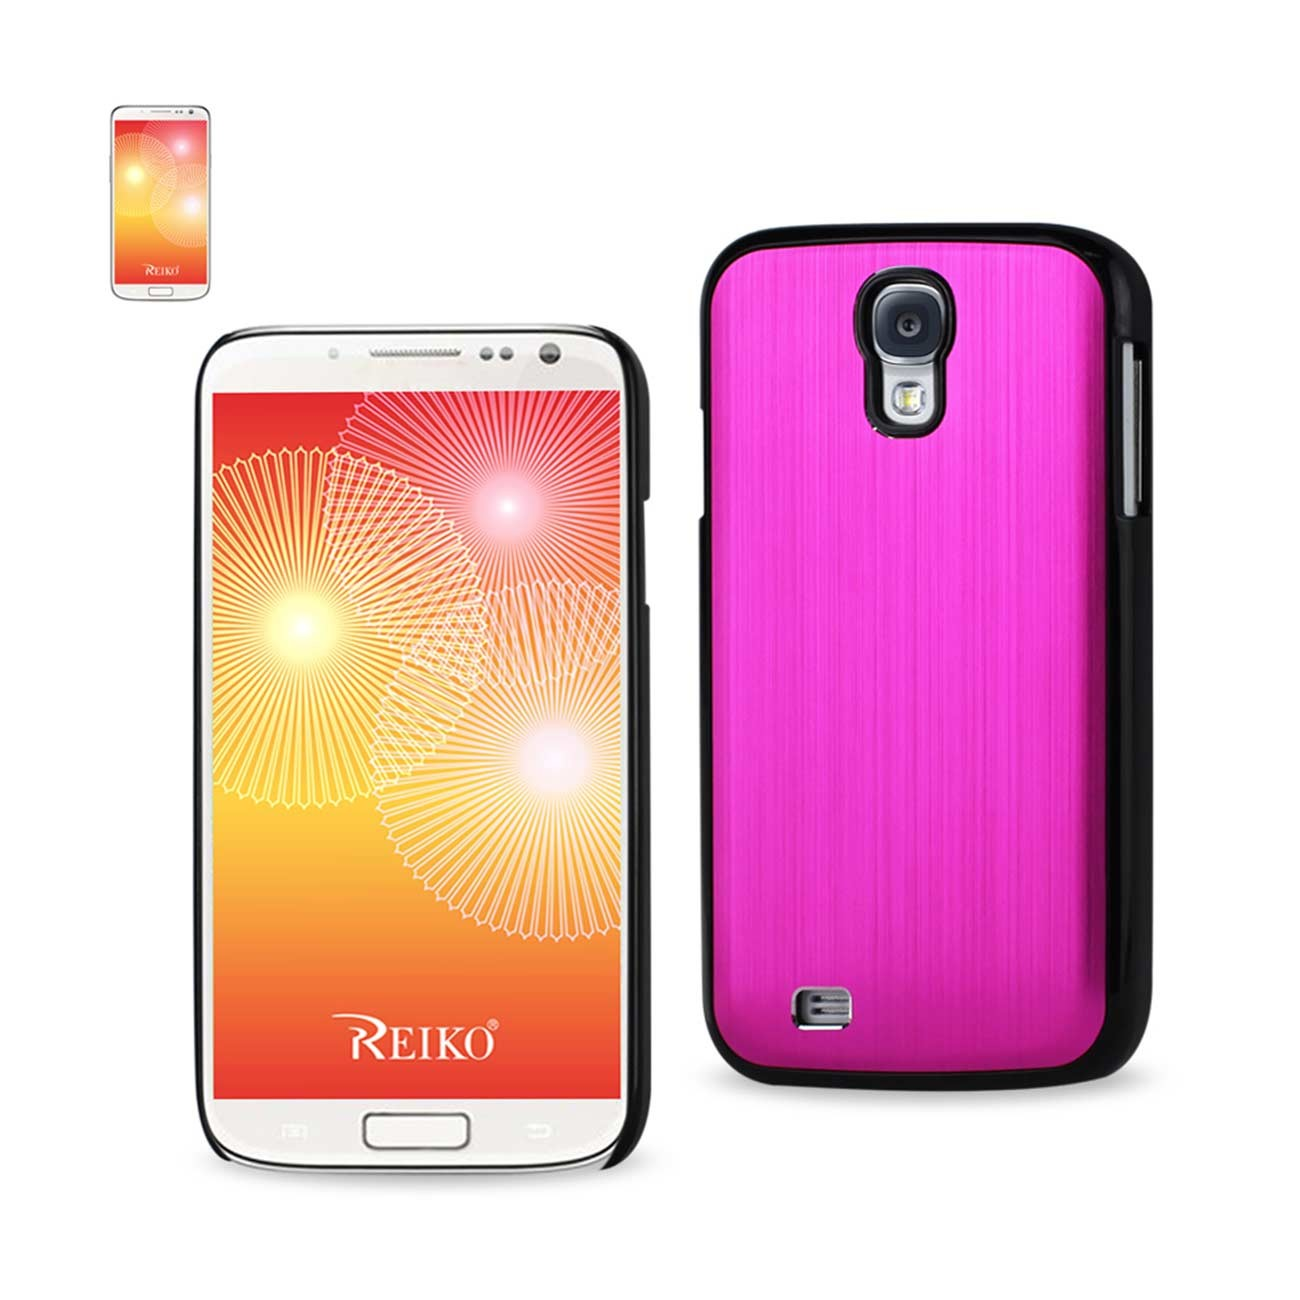 Reiko Wireless Aluminum Varnish Protective Case for Samsung Galaxy S4 - Hot Pink